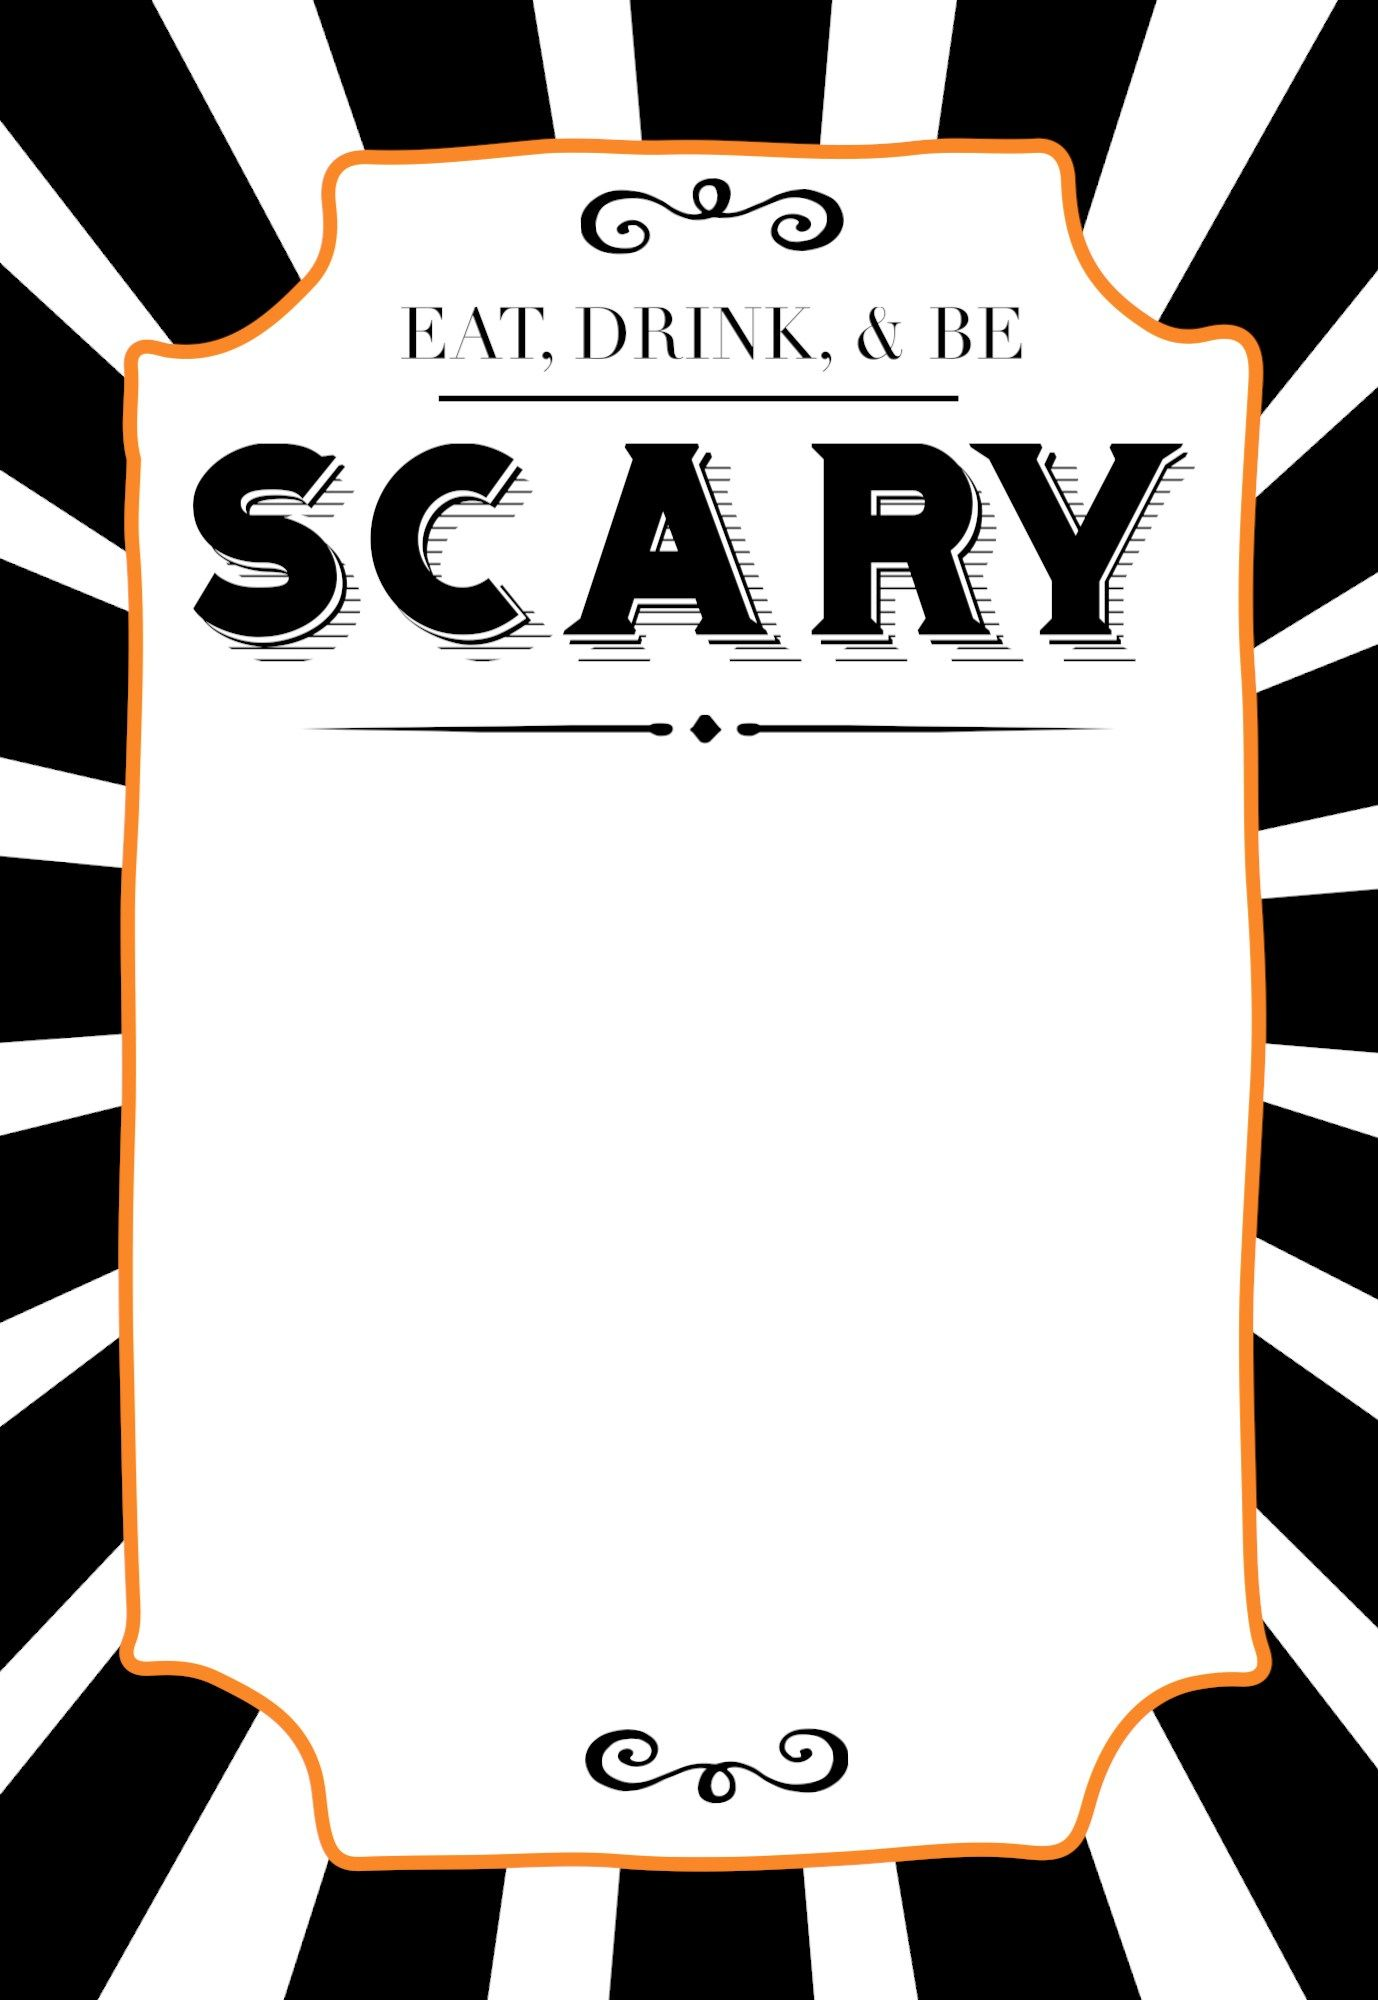 Halloween Invitations Free Printable Template Paper Trail Design Halloween Party Invitation Template Free Halloween Invitation Templates Free Halloween Invitations